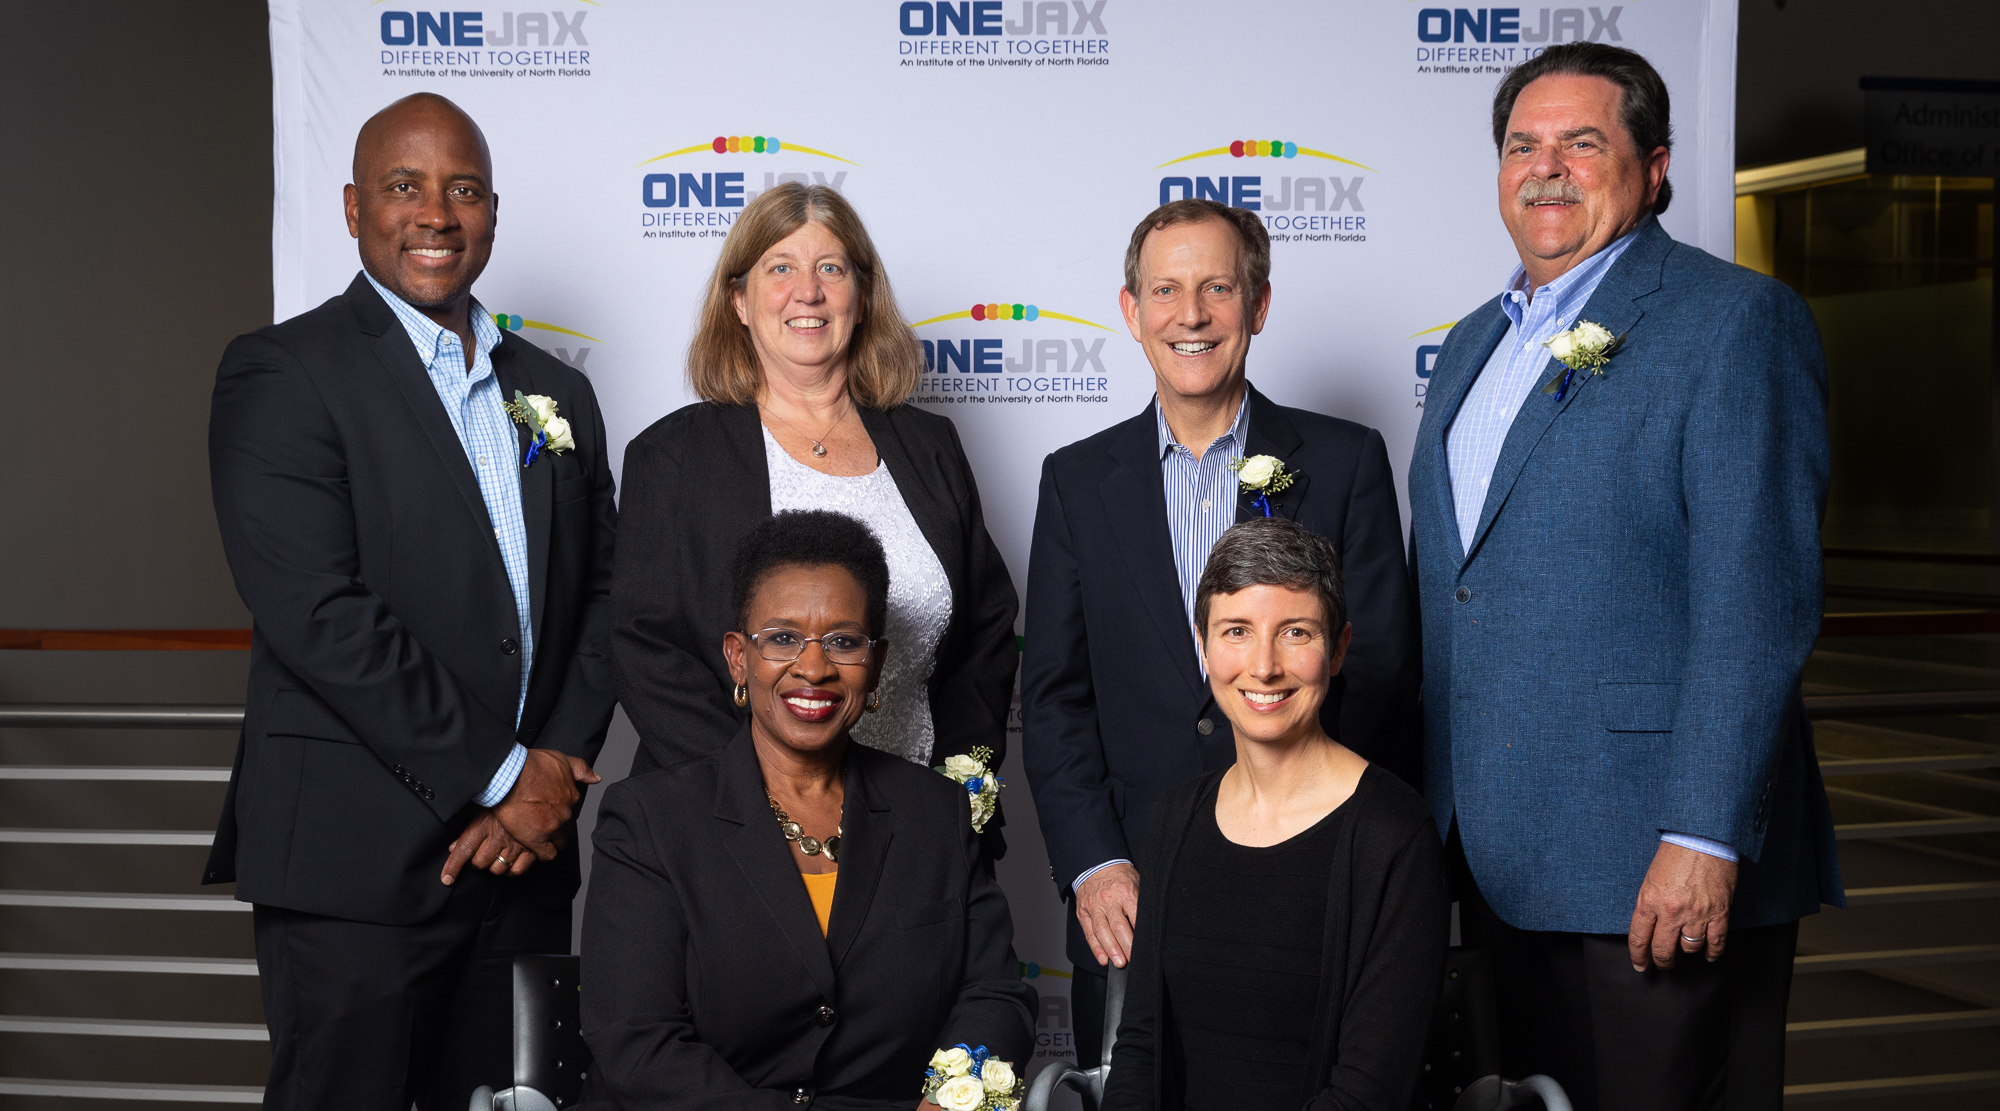 OneJax Humanitarian Award Honorees standing together against a OneJax backdrop